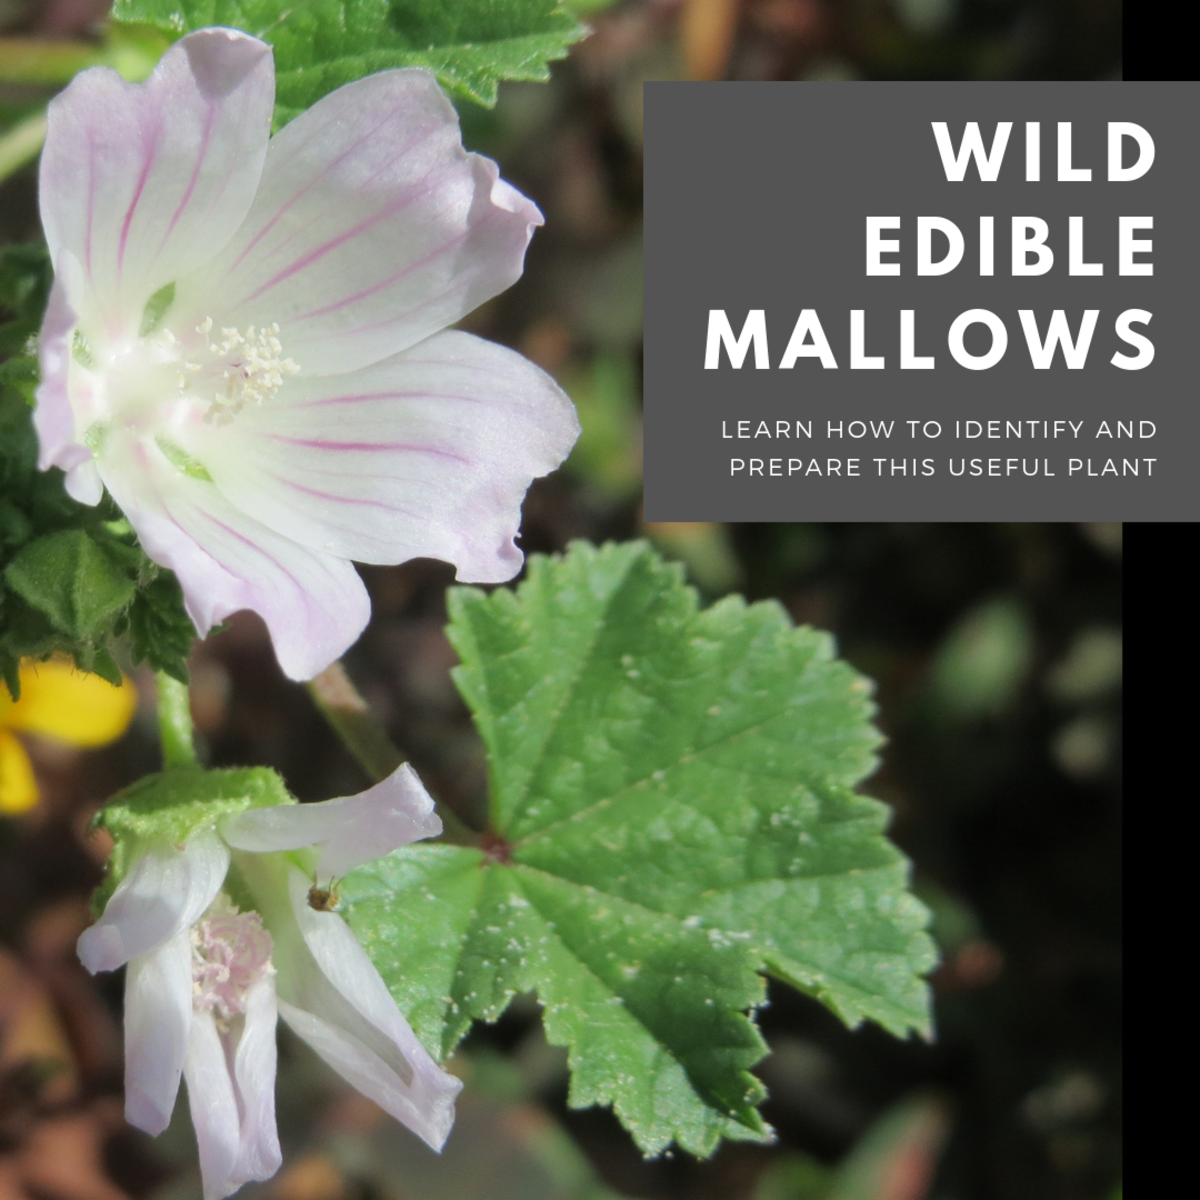 This guide will show you how to identify and prepare a few species of edible mallows, as well as provide background on where they come from and how they were named.